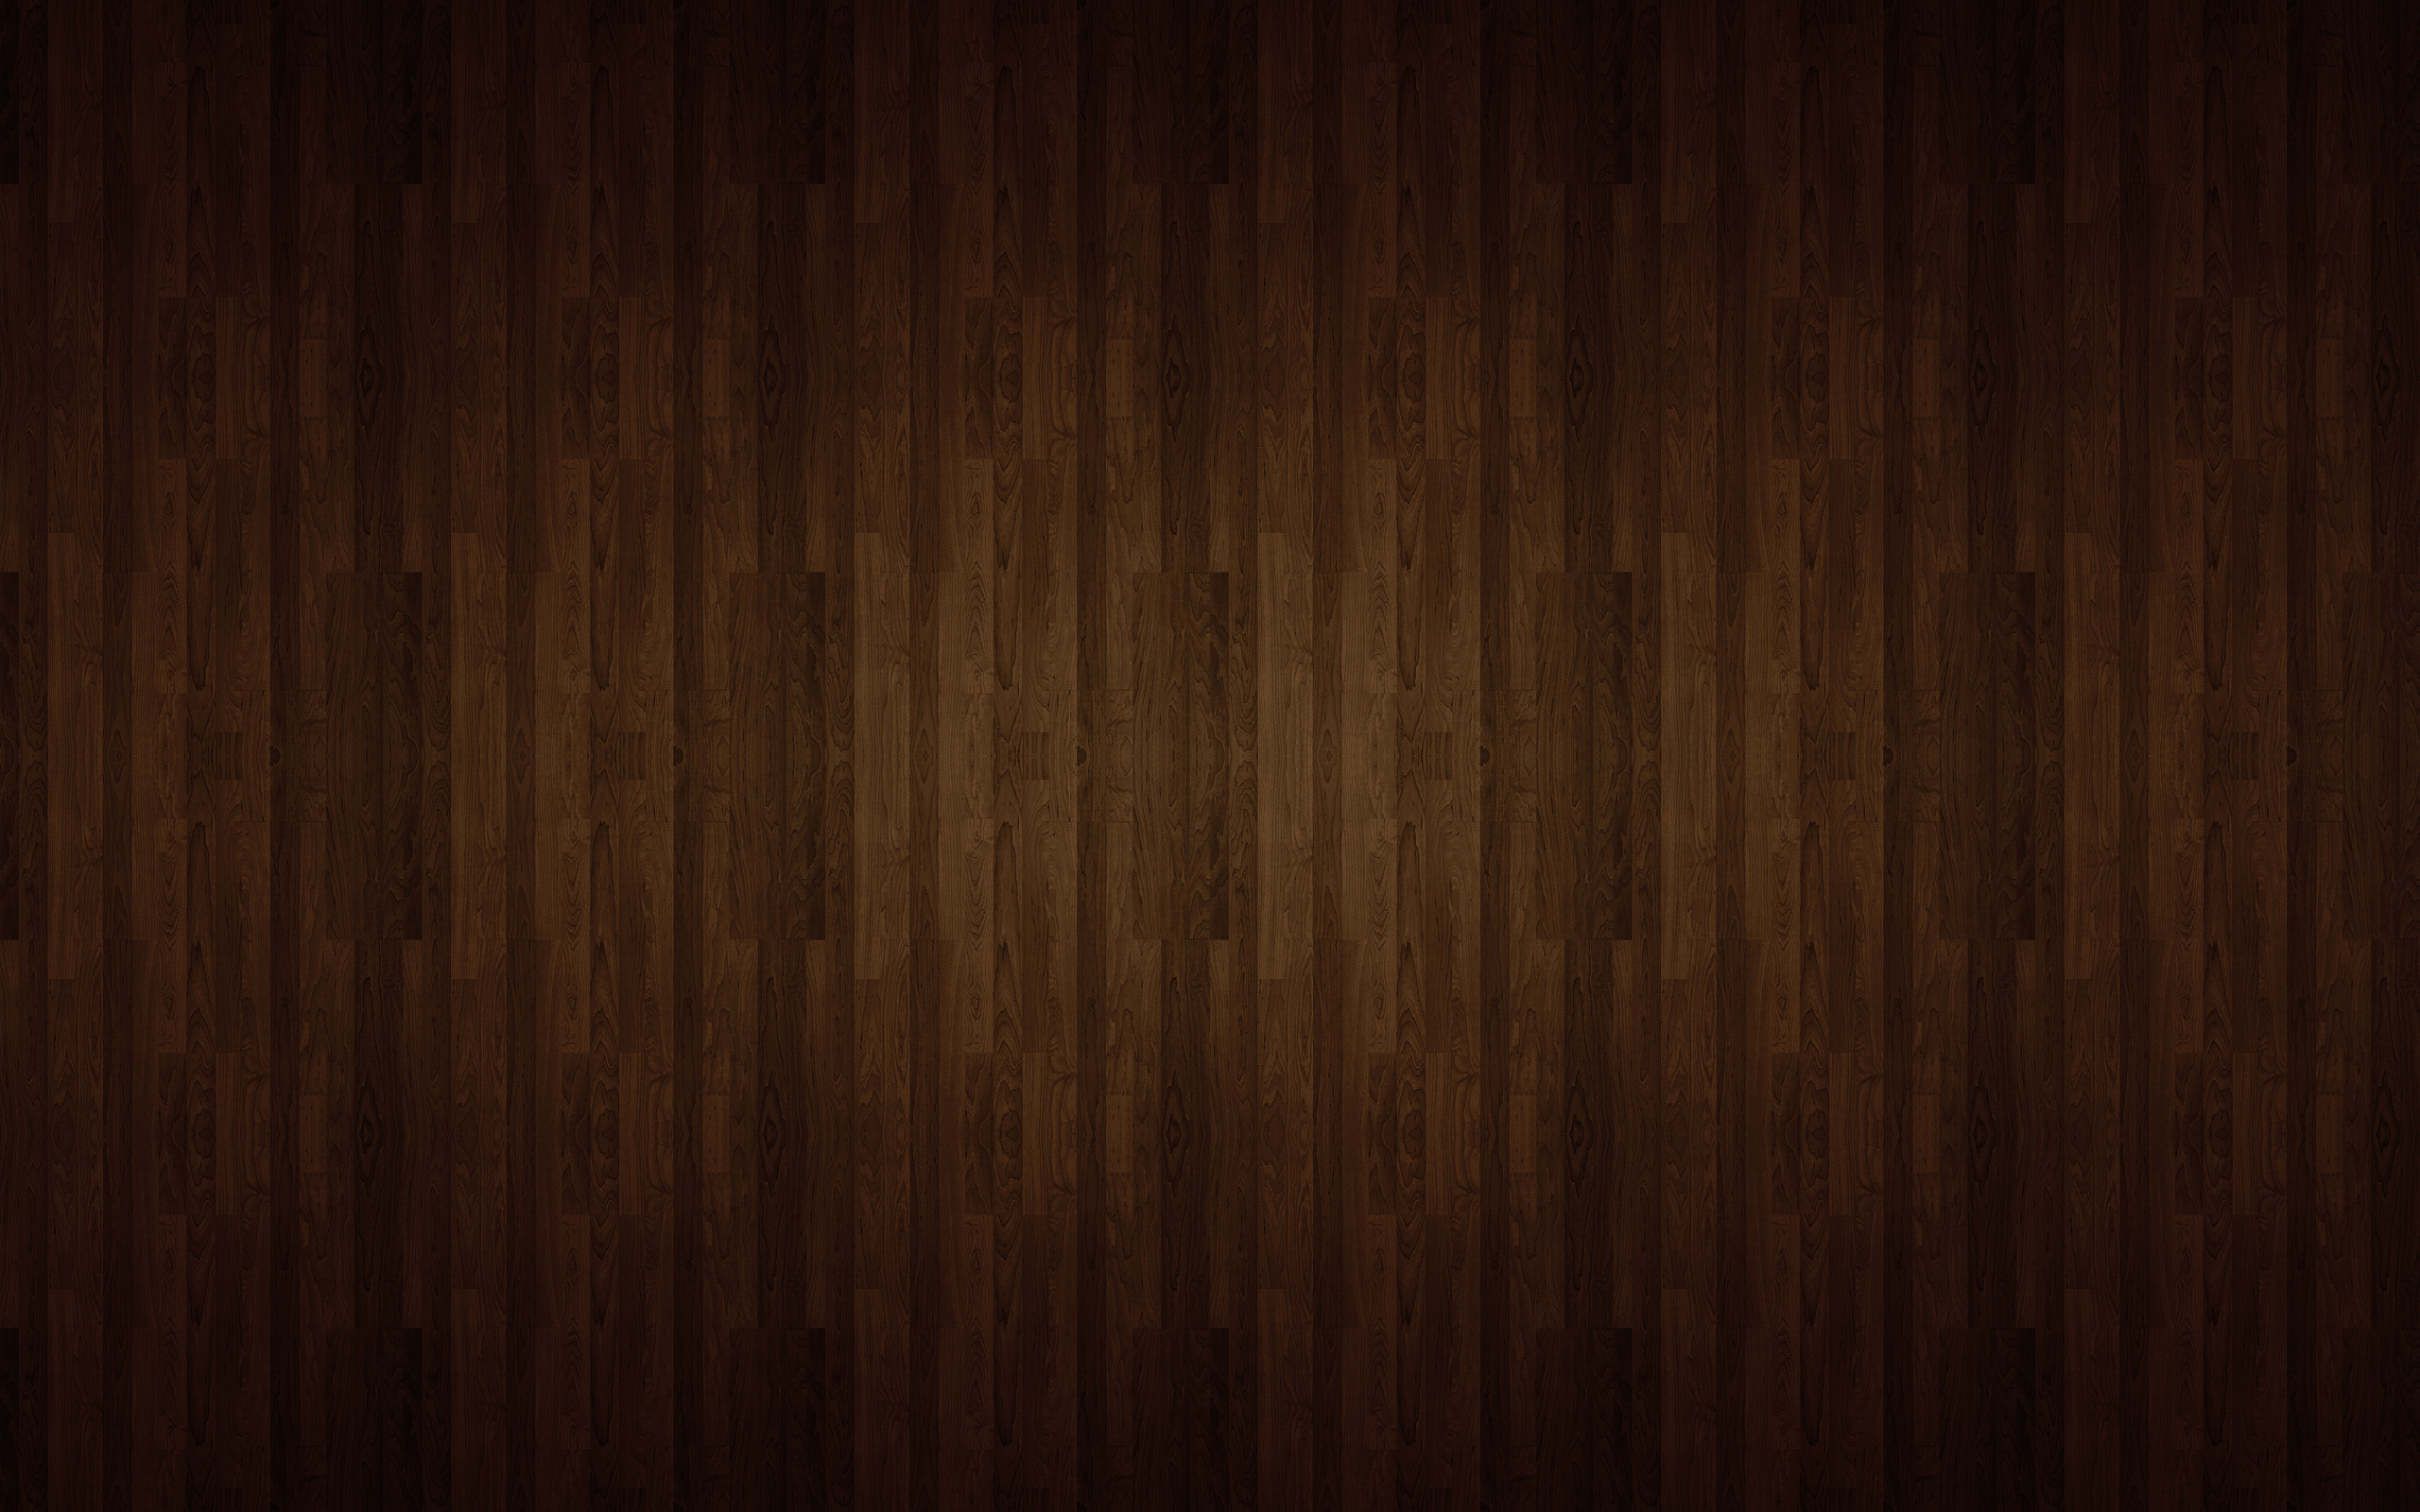 Background Kayu Warna Coklat 197 Wood Hd Wallpapers Background Images Wallpaper Abyss